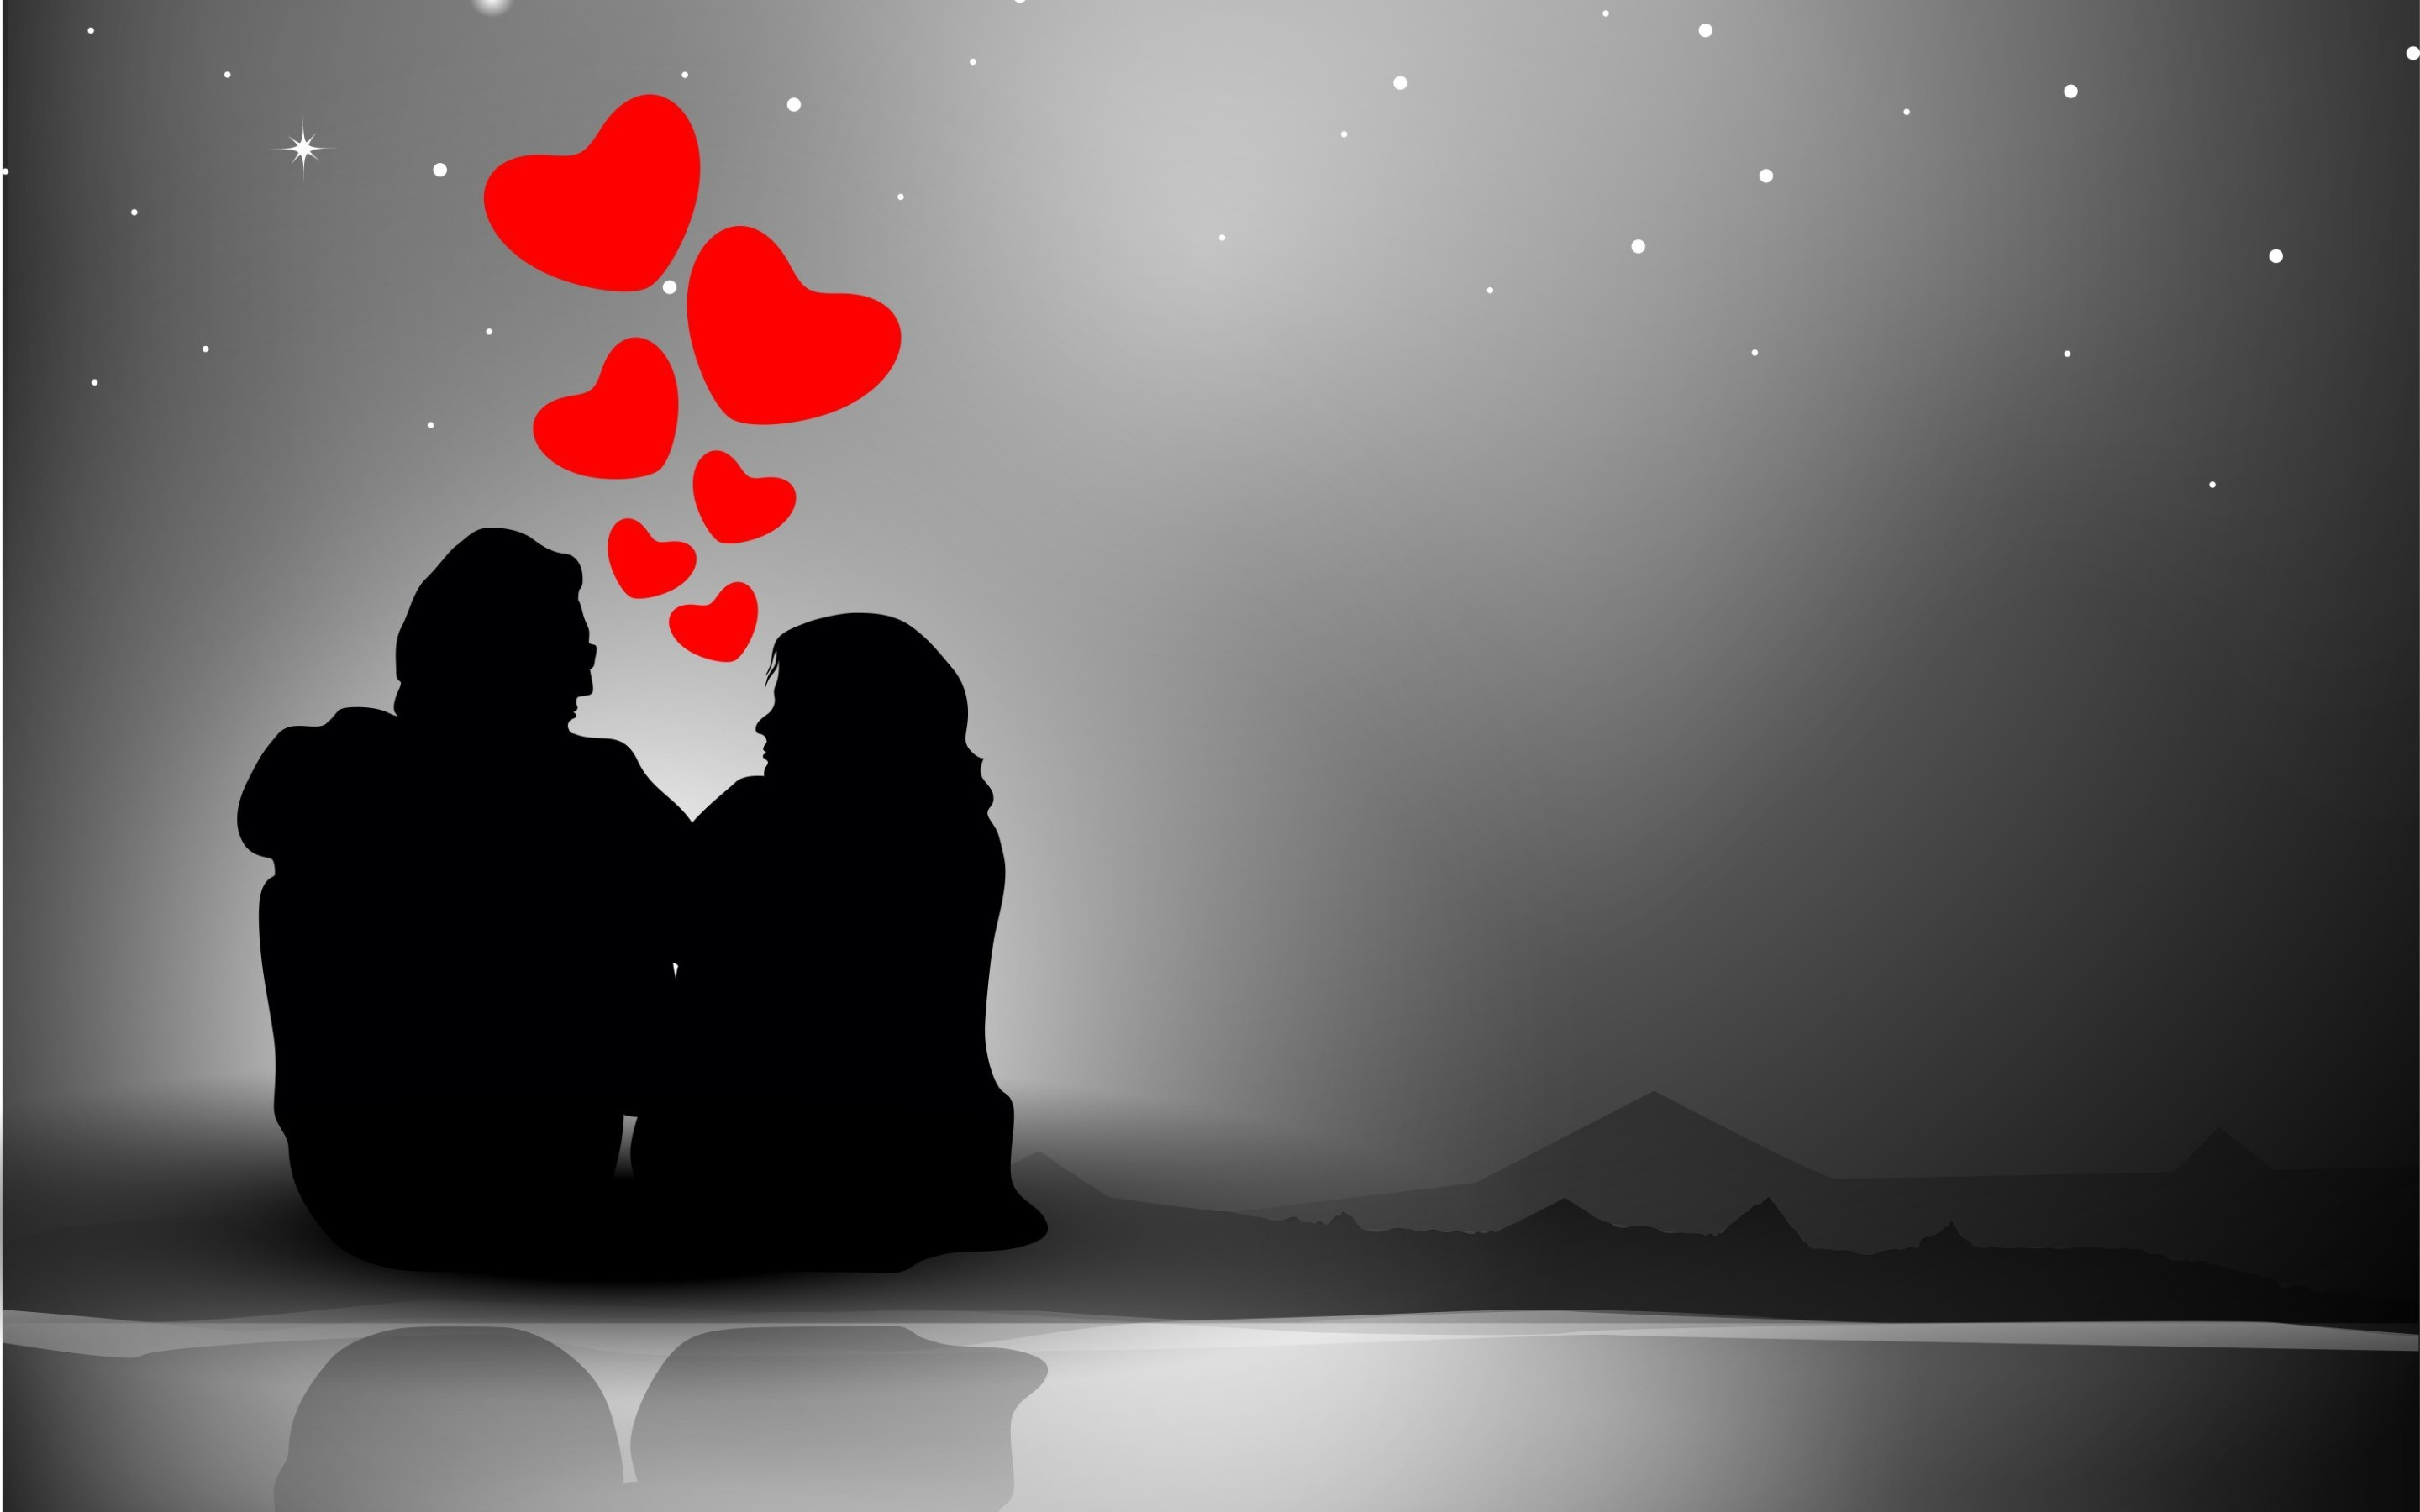 Cute Couples Wallpapers Full Hd Love Hearts Background 41 Images